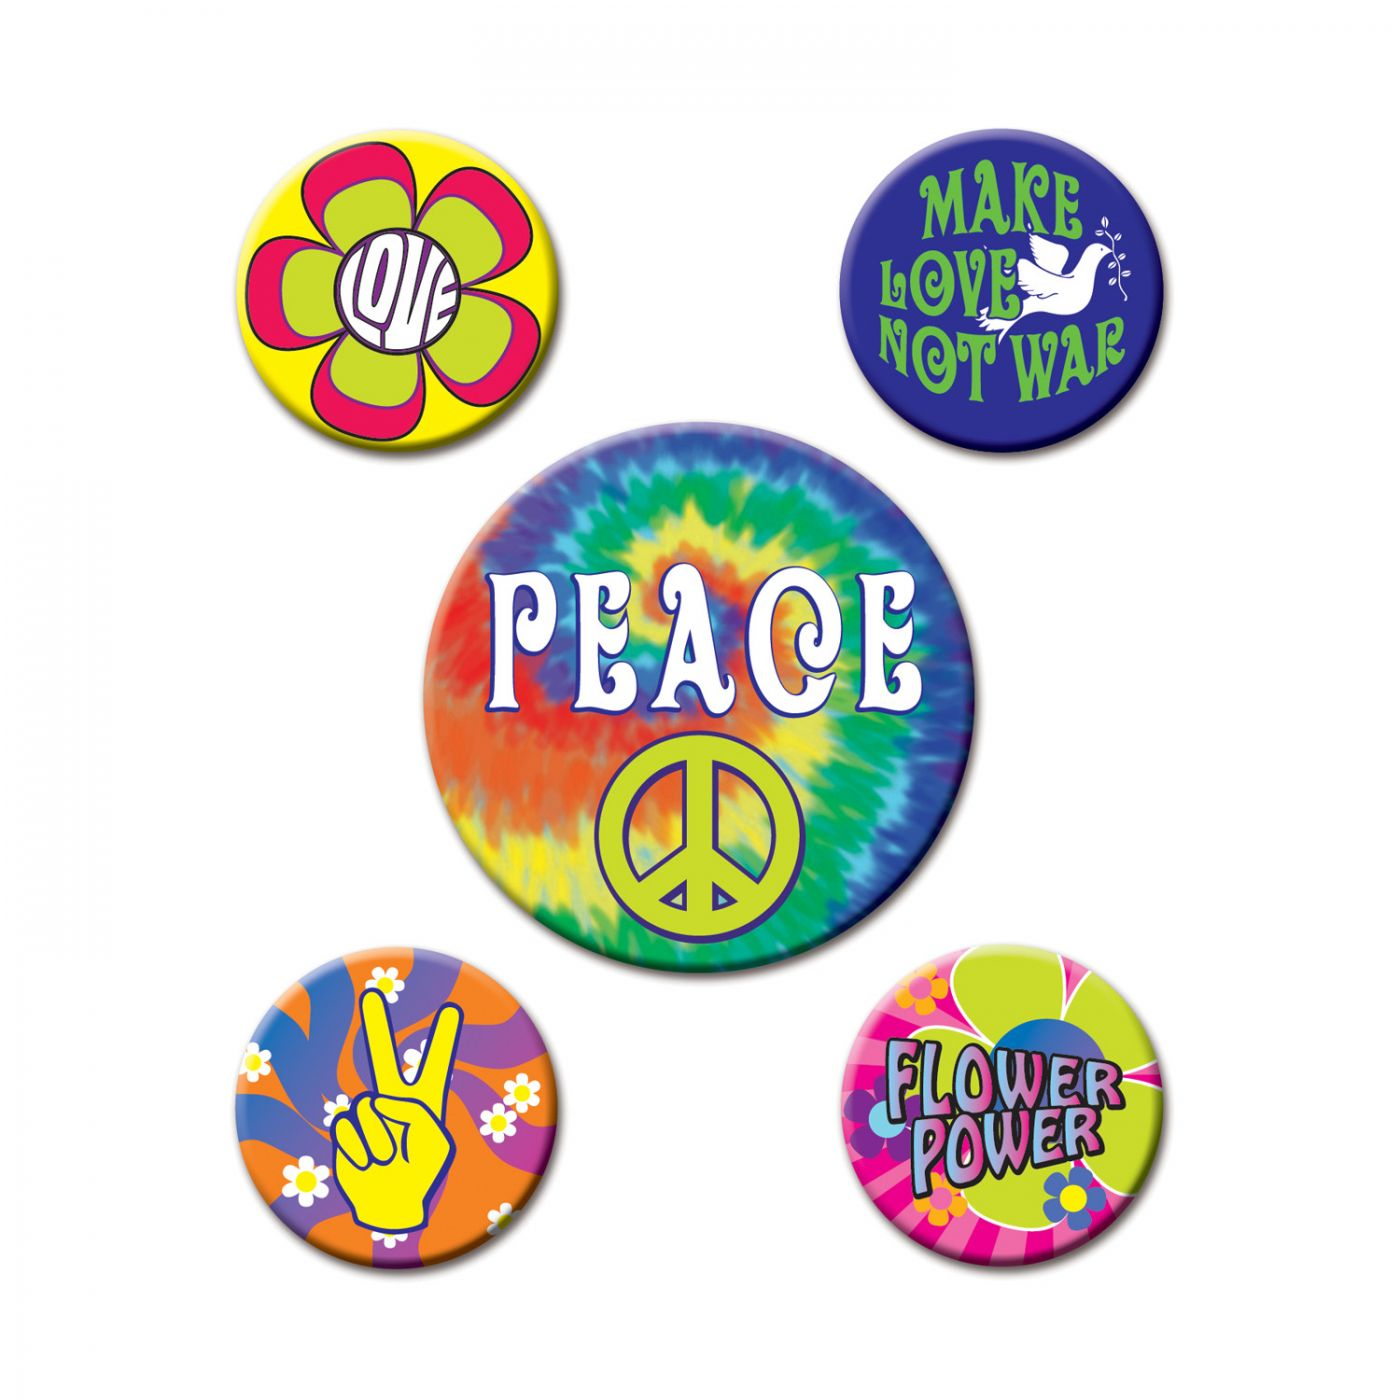 60's Party Buttons image